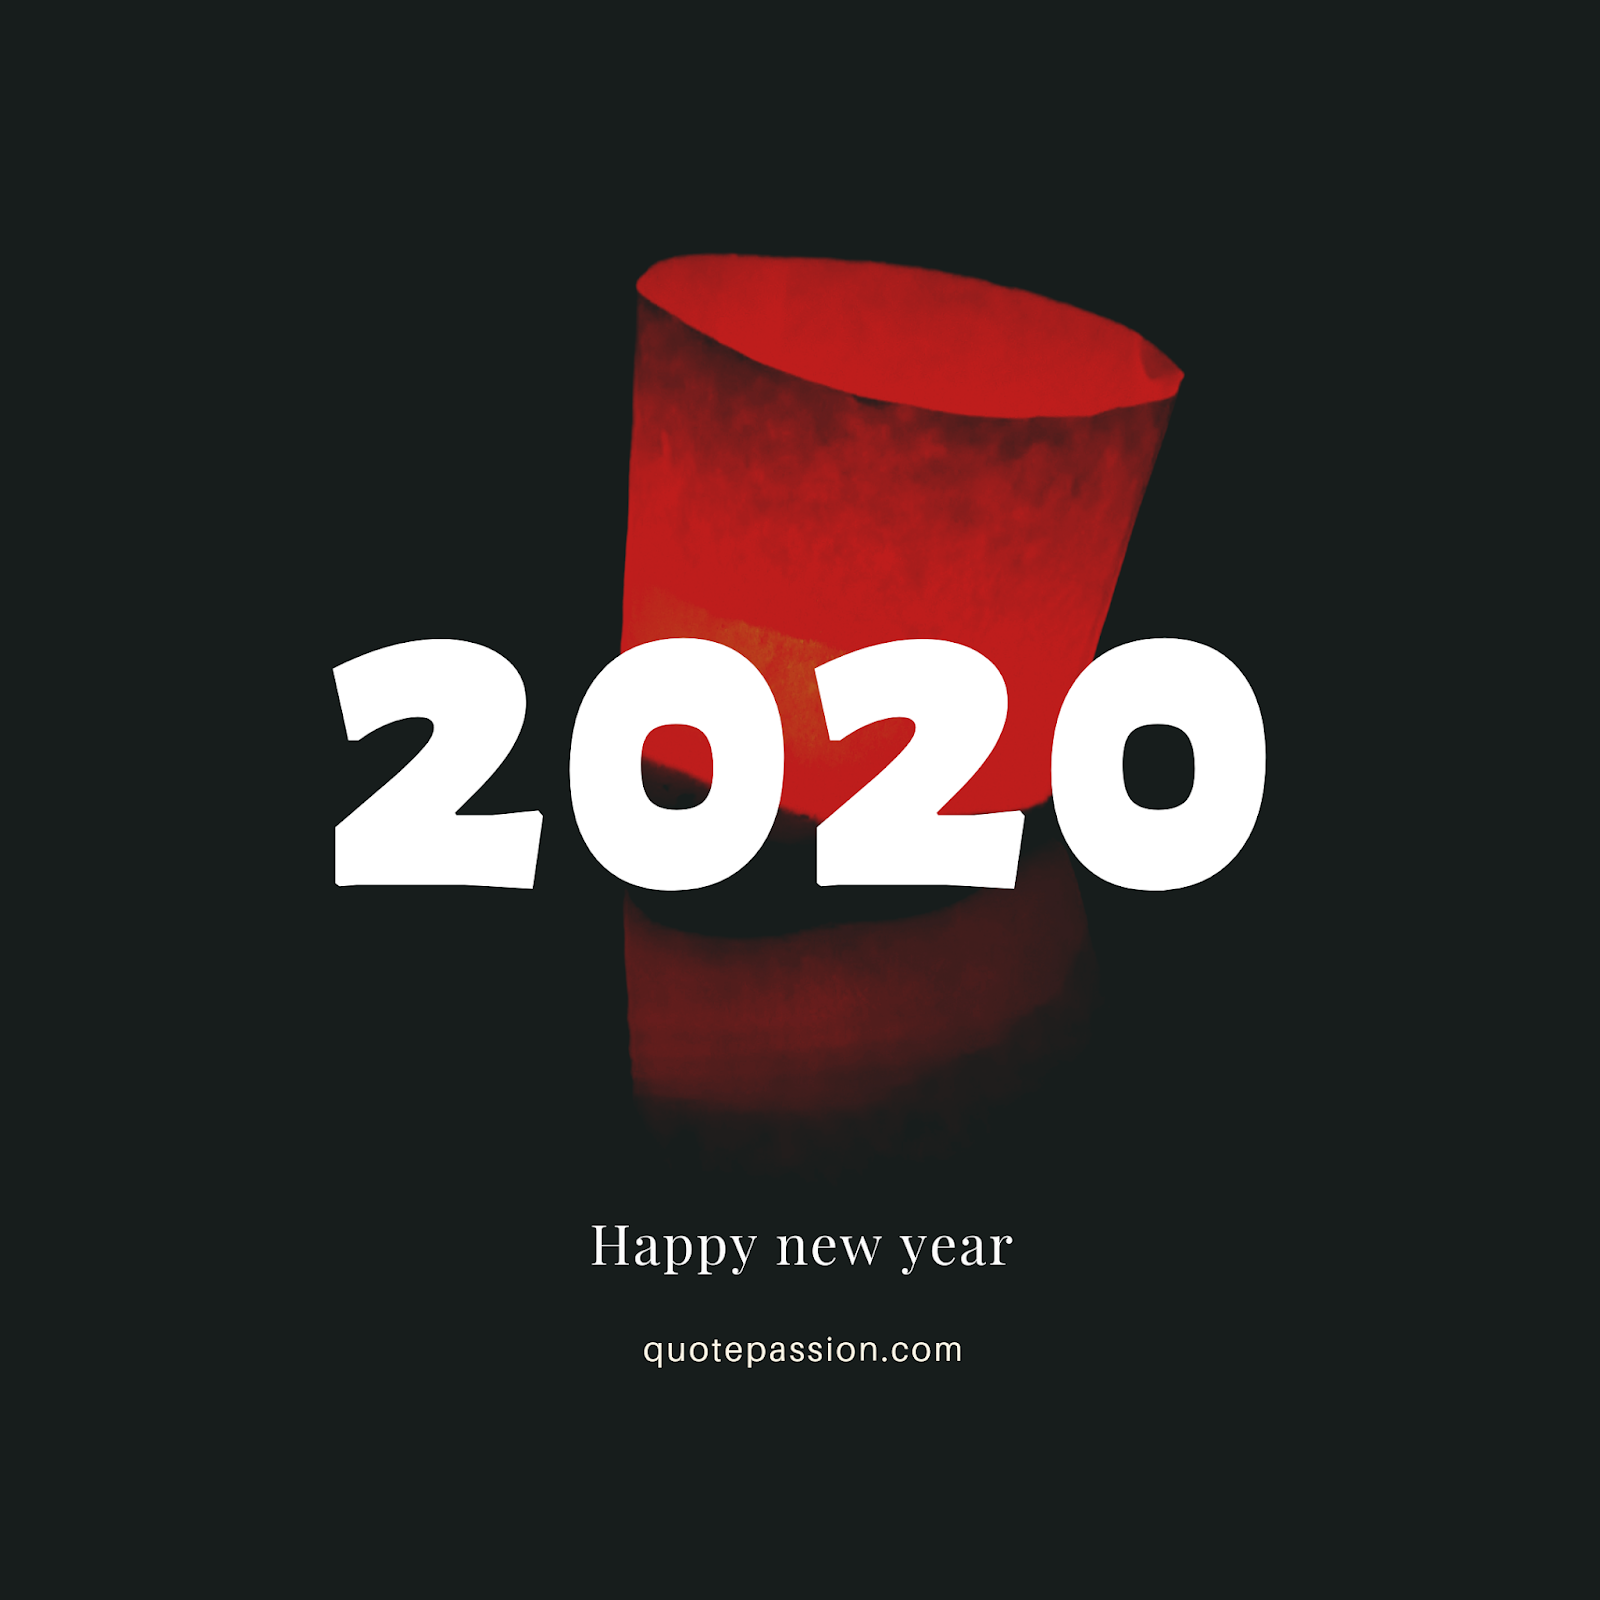 Free Download Happy New Year 2020 Hd Wallpapers Images